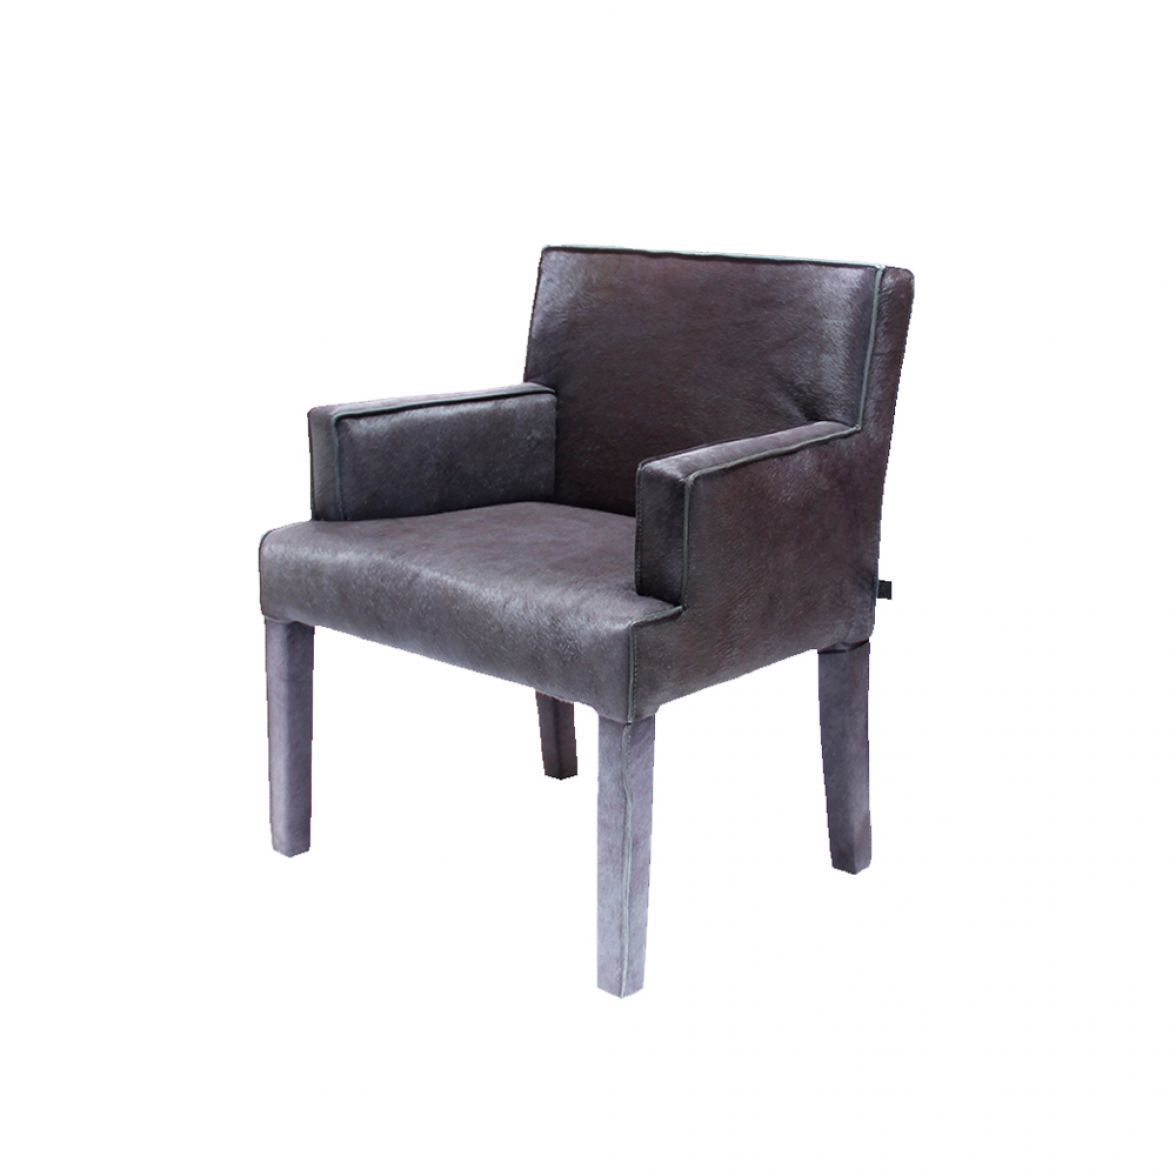 Stockholm hairy grey armchair